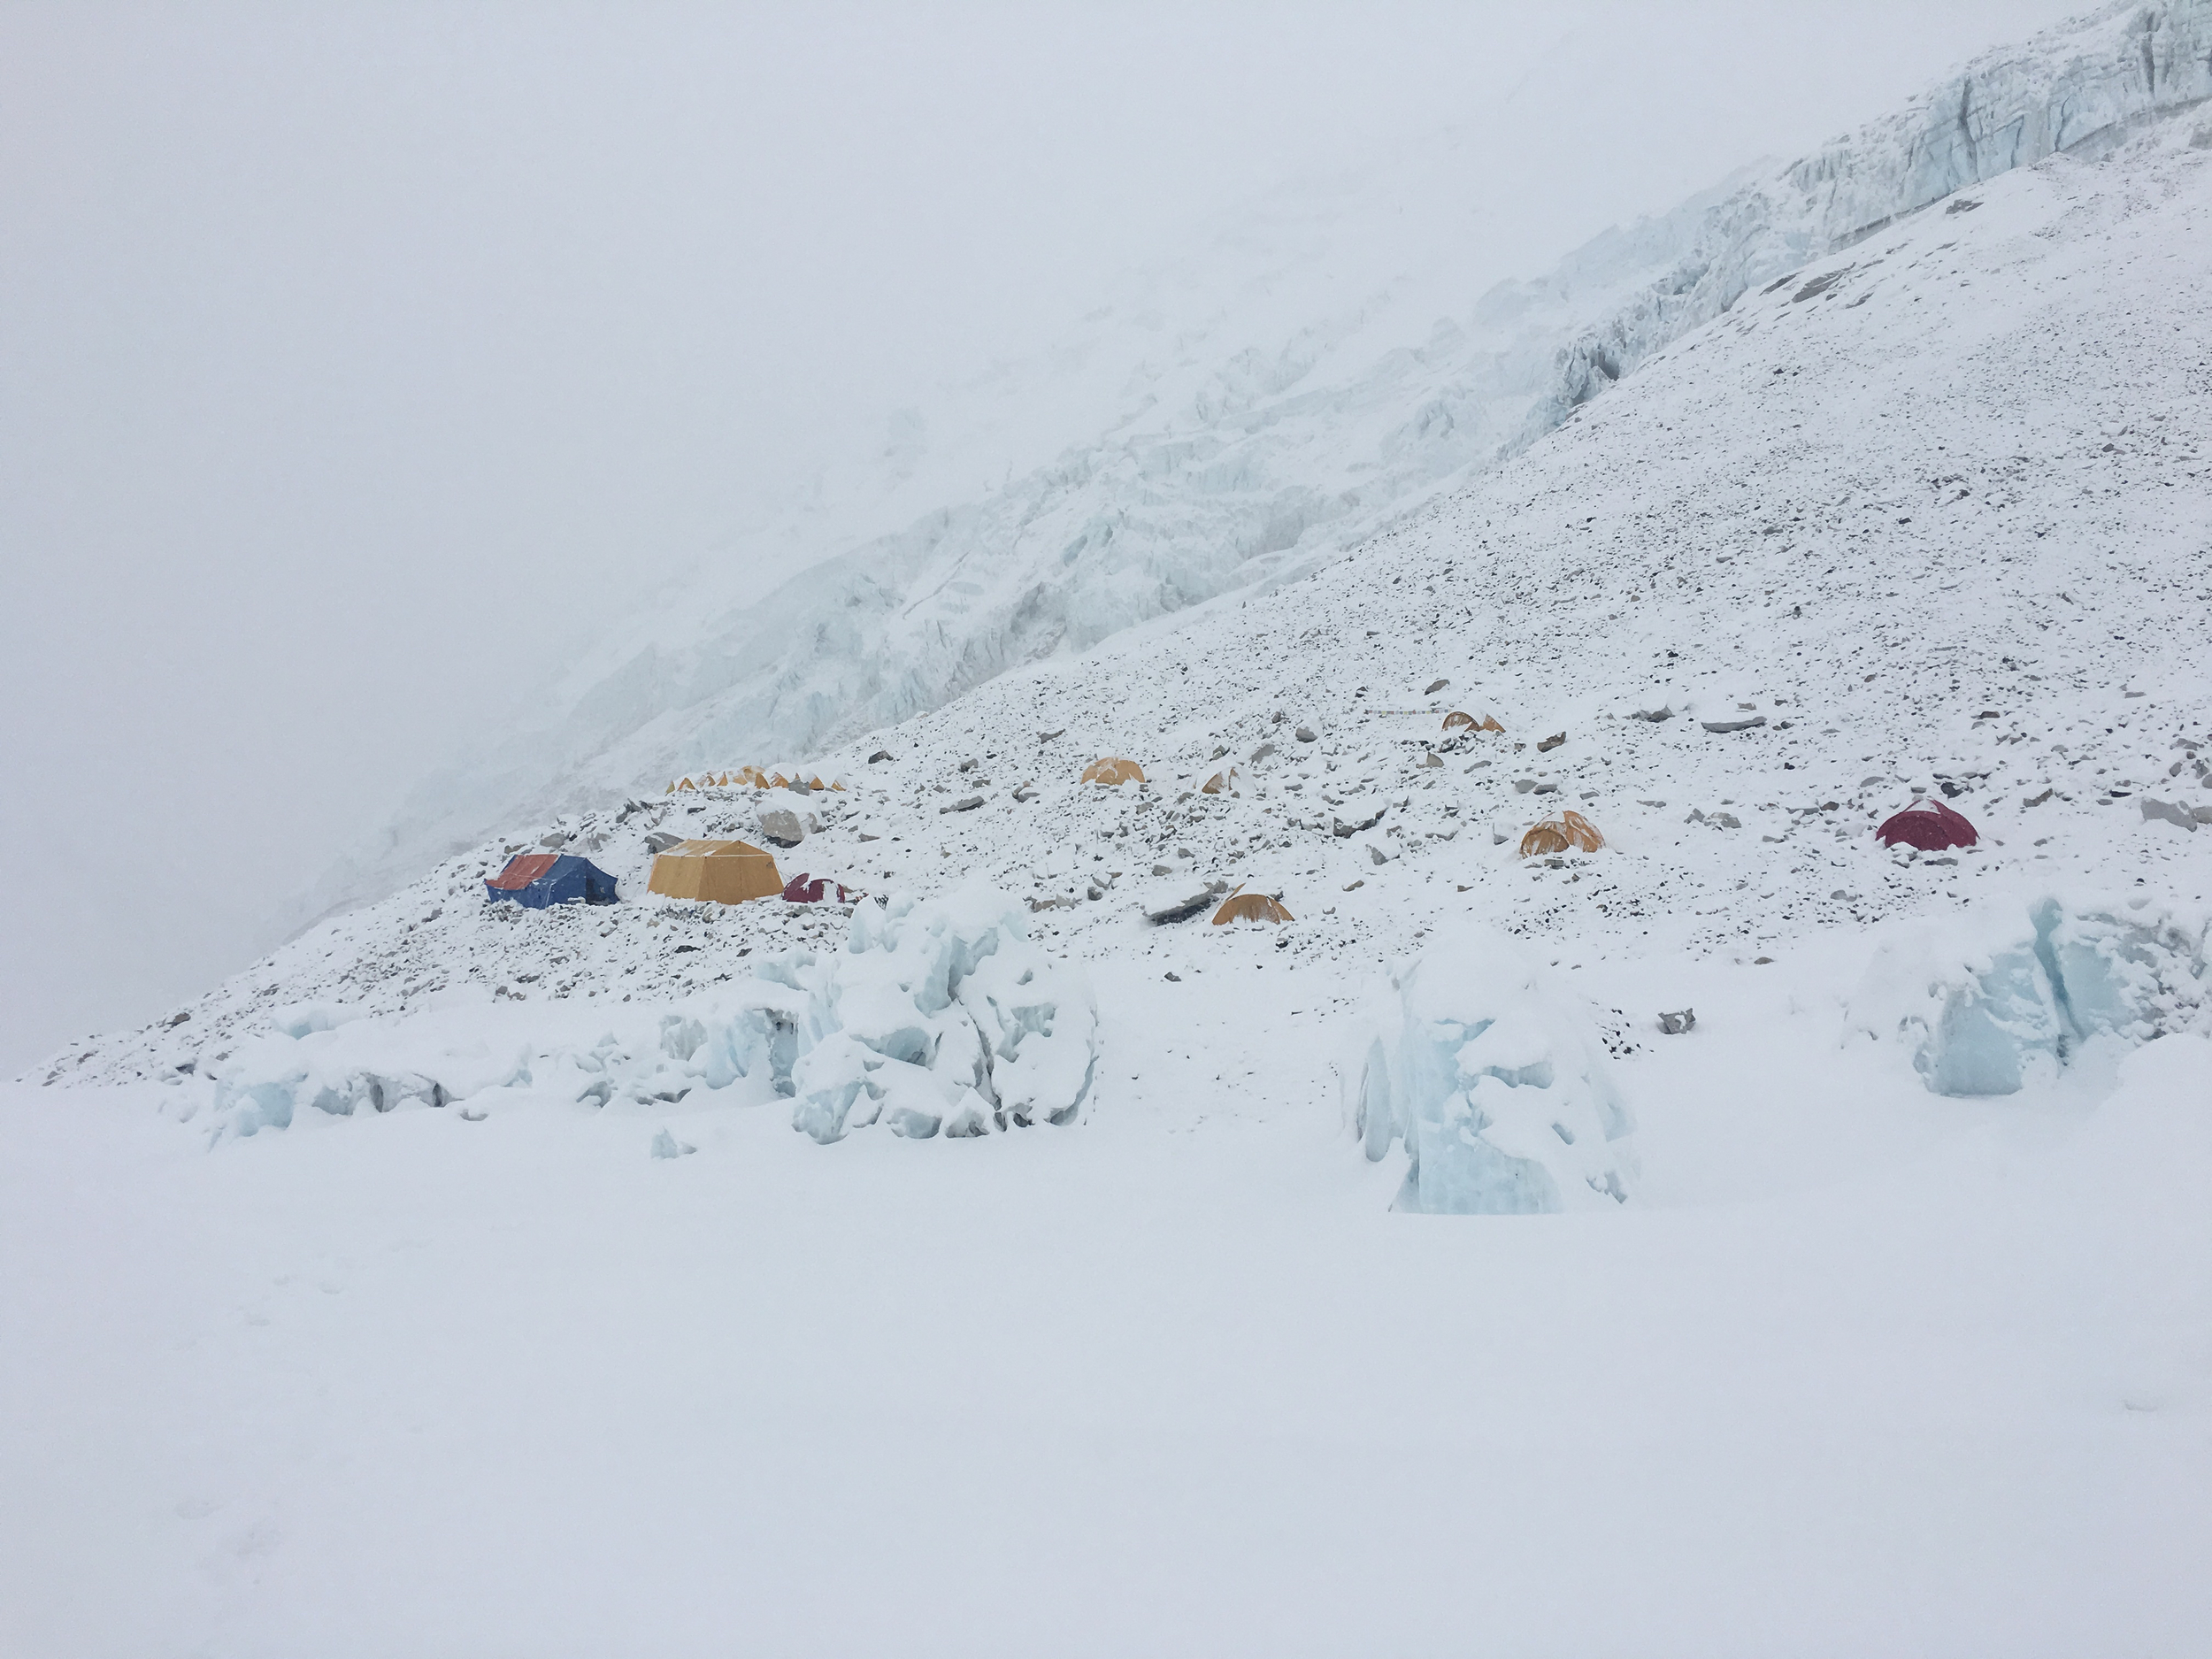 Camp 2 under the snow